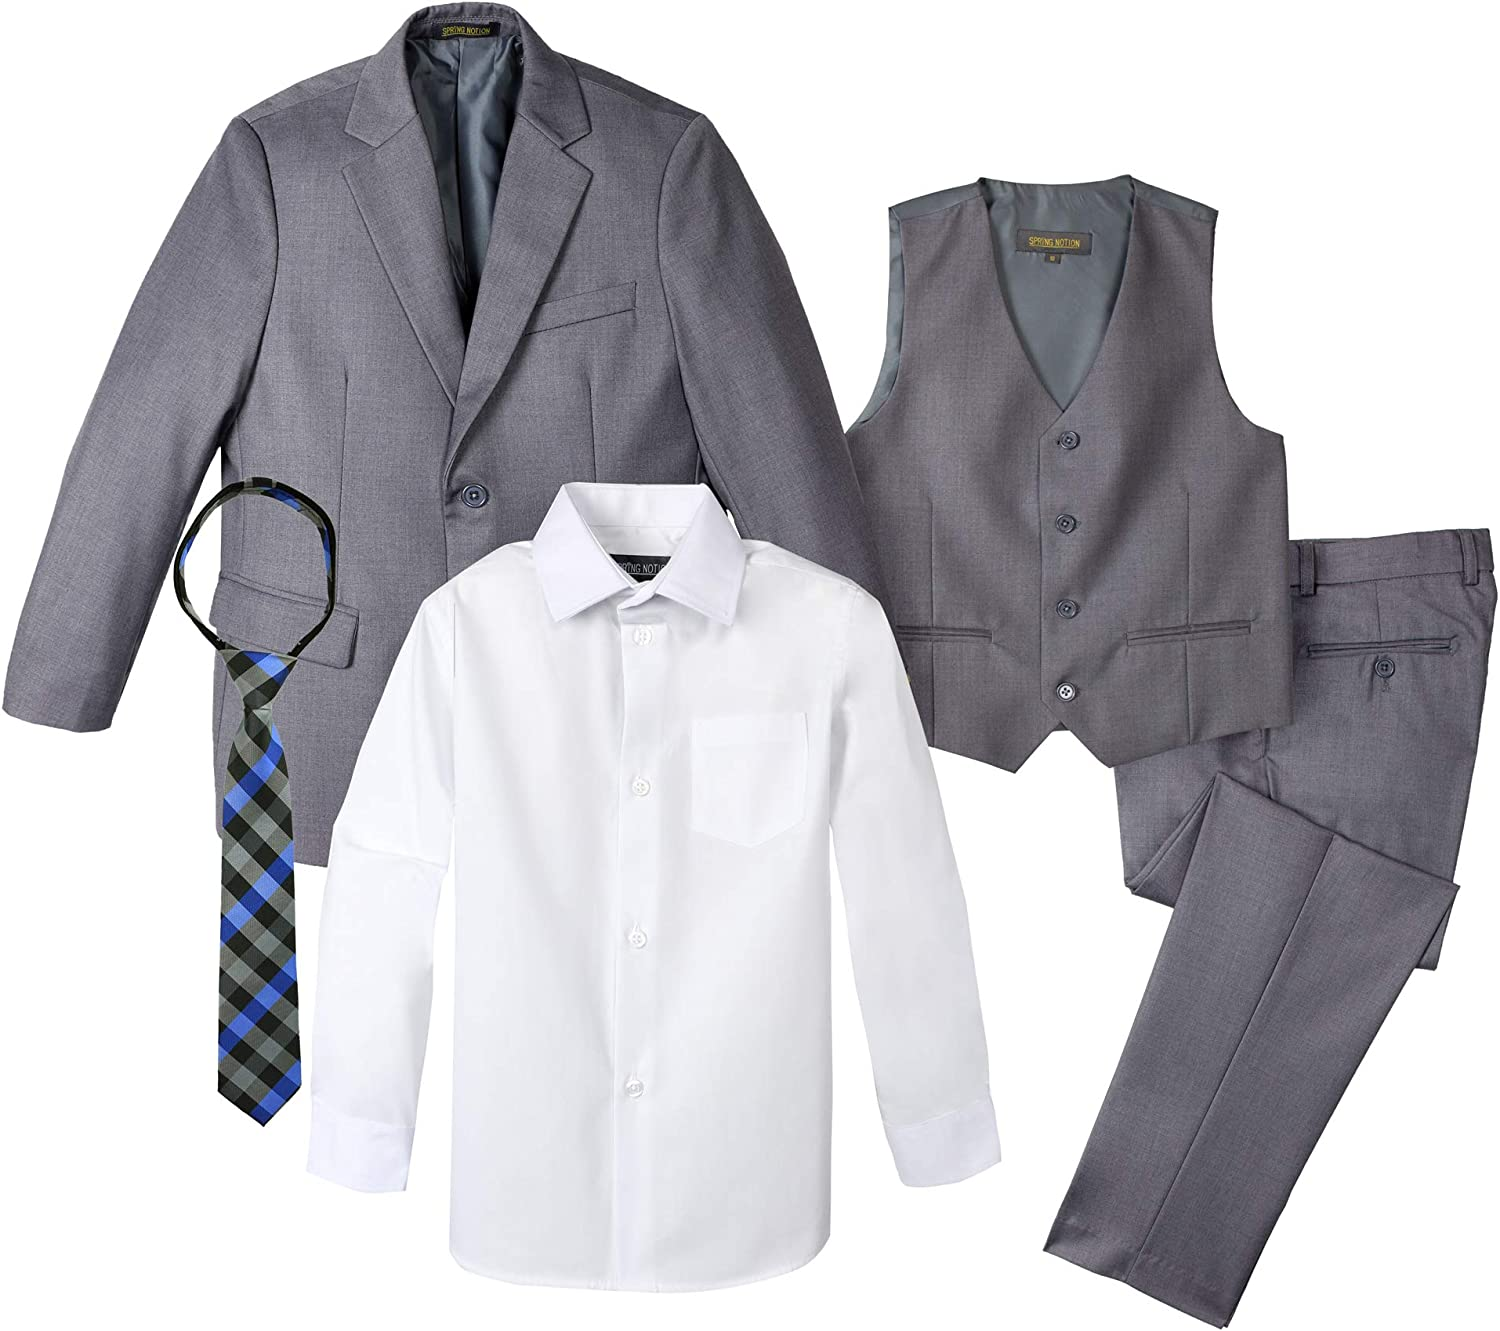 Spring Notion 5 ☆ very popular 4 years warranty Big Boys' Two-Button Grey Set 5-Piece Suit